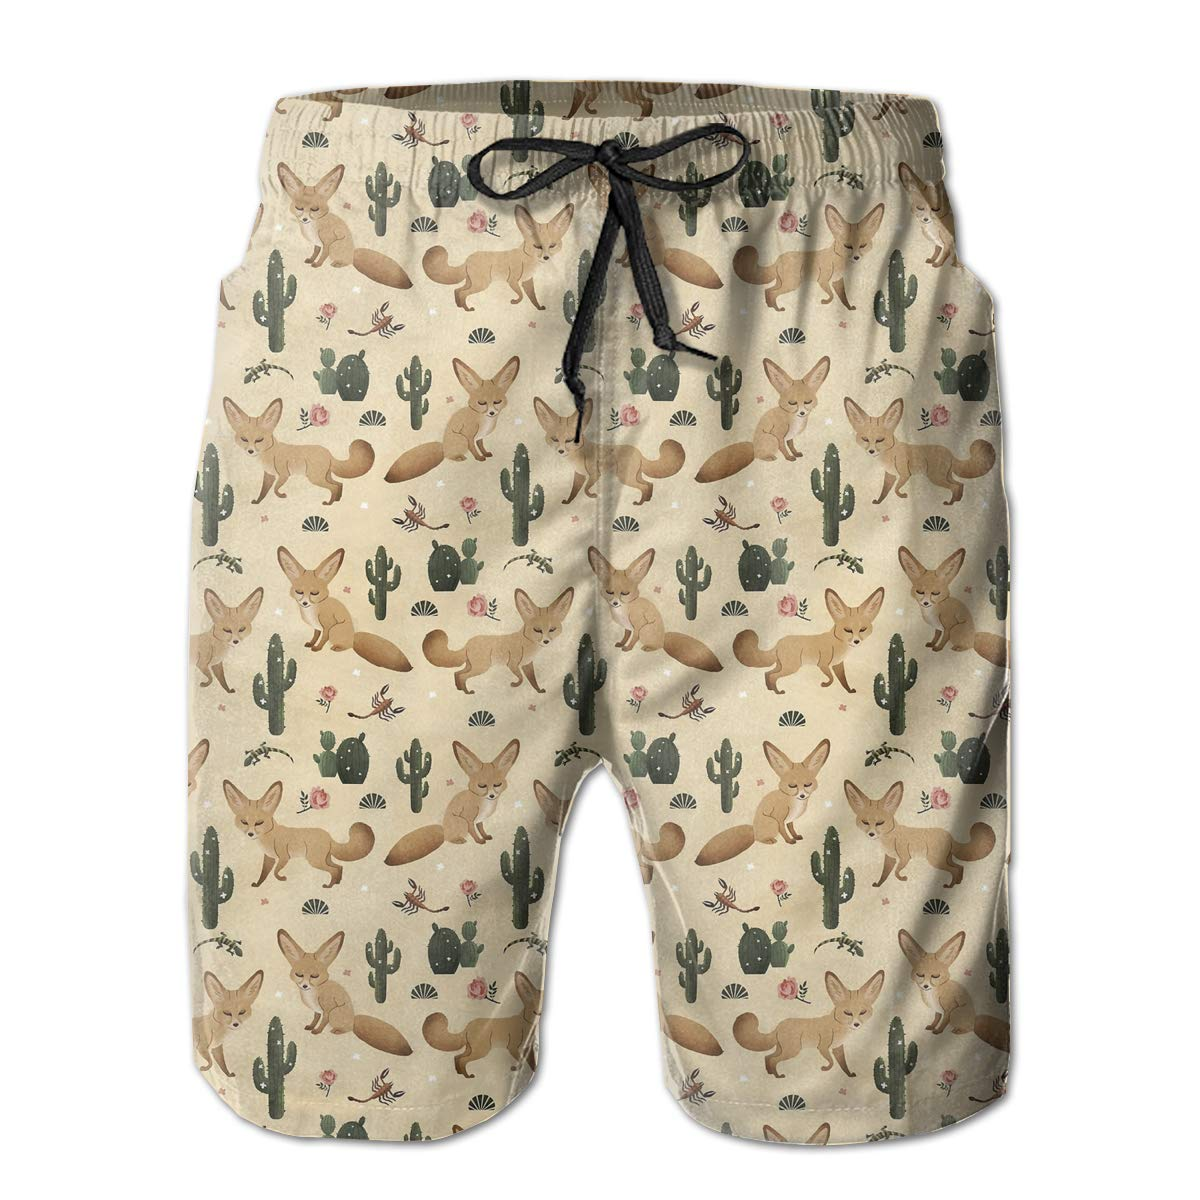 d8efe458165e4 White ROLLING ROLLING ROLLING HOP Men's Dry Swim Trunks Cactus and Cute  Little Fox Beach Shorts for Outside Home with Pockets eb65df